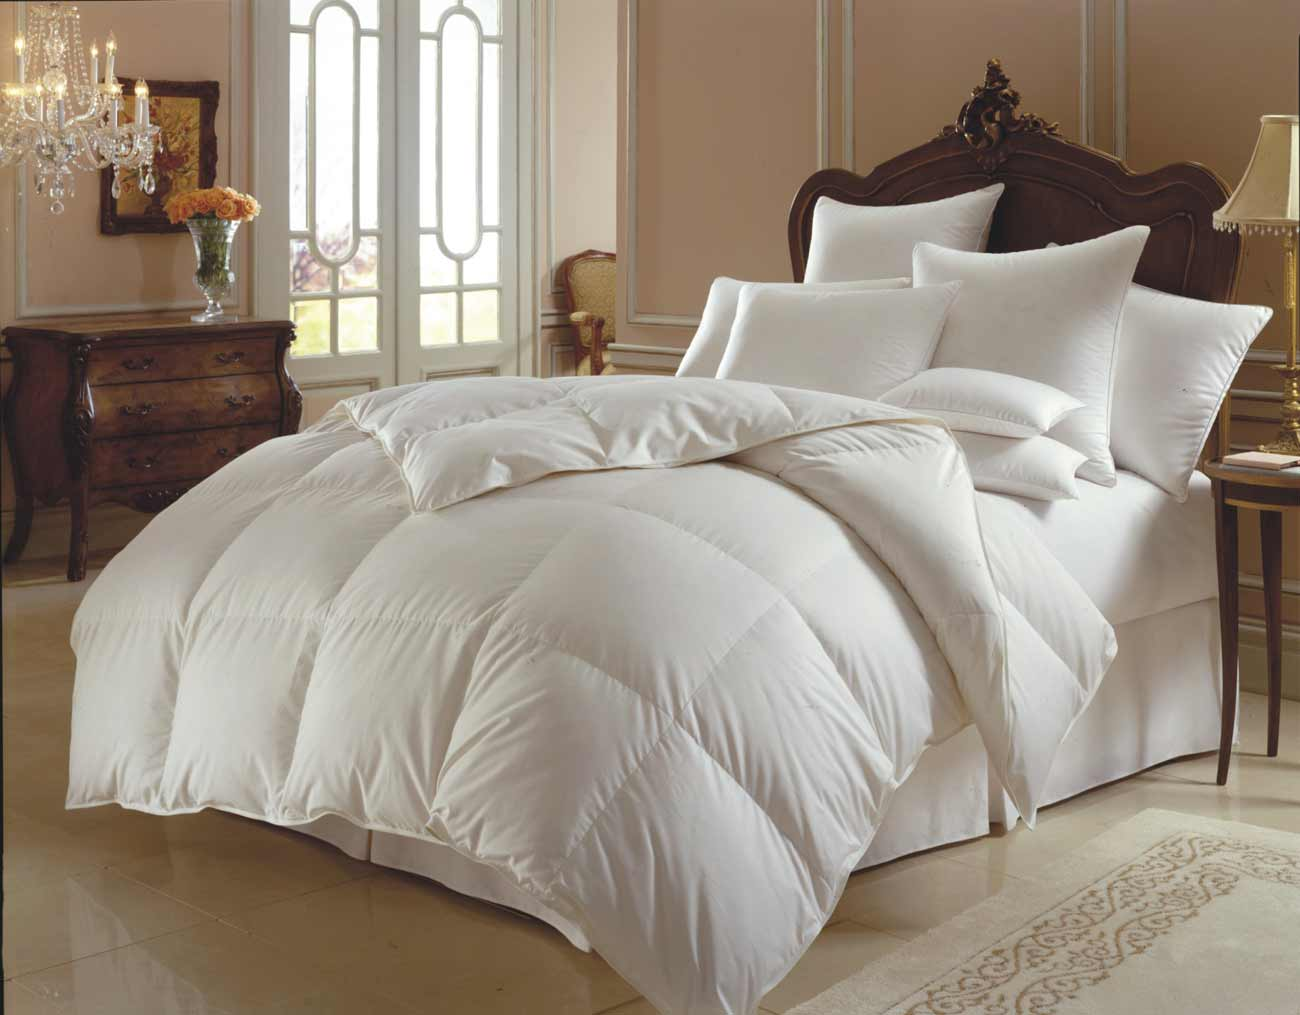 Oversized White Down Comforter in King Size